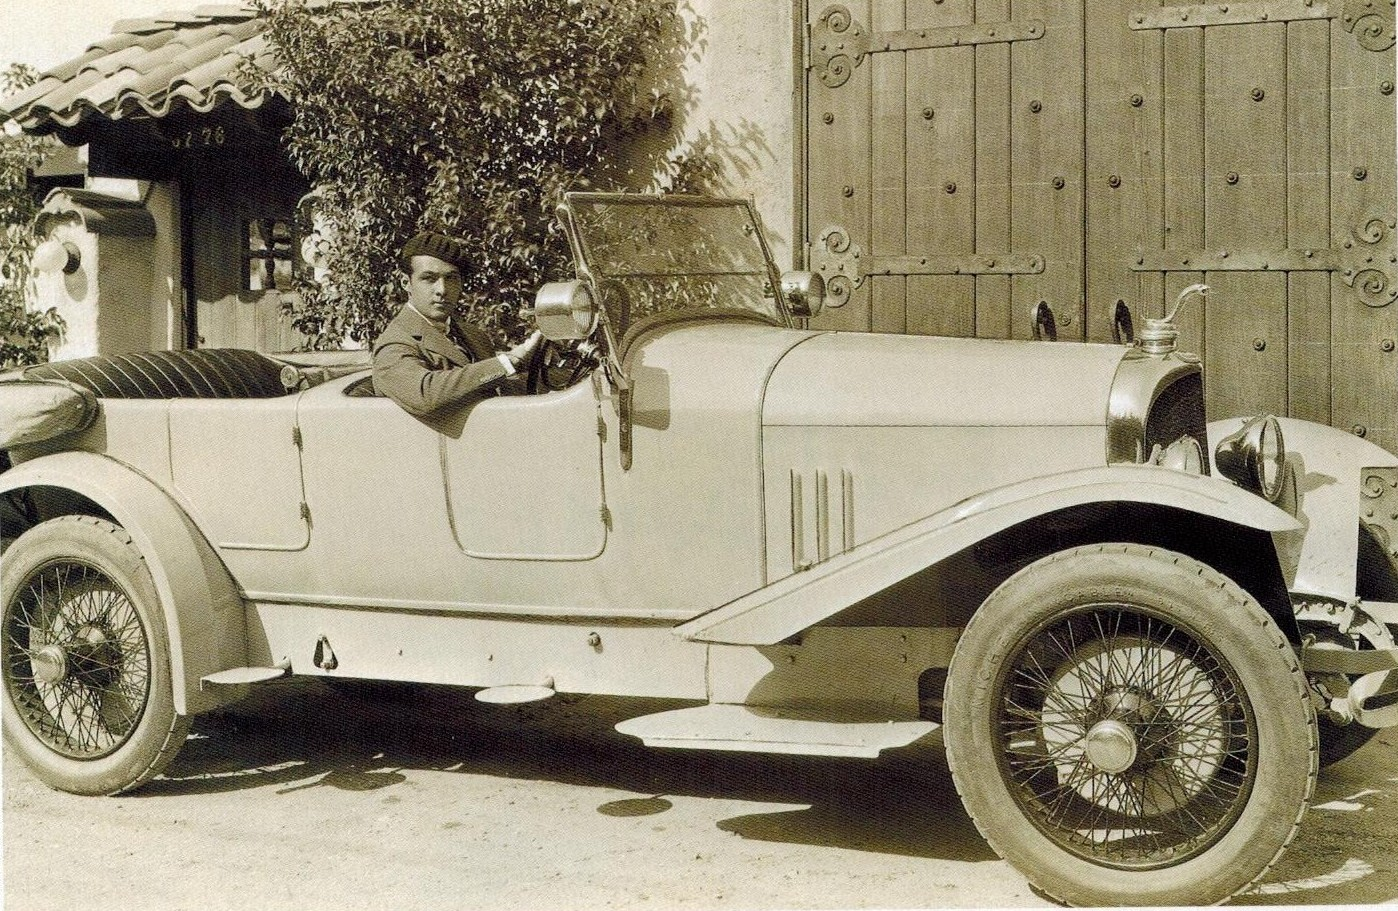 Rudolf Valentino at the wheel of his Voisin. The coiled cobra ornament is not the Voisin one but was a gift from Douglas Fairbanks, beating Carol Shelby to the idea by a few decades. (Picture courtesy jhgraham.com).